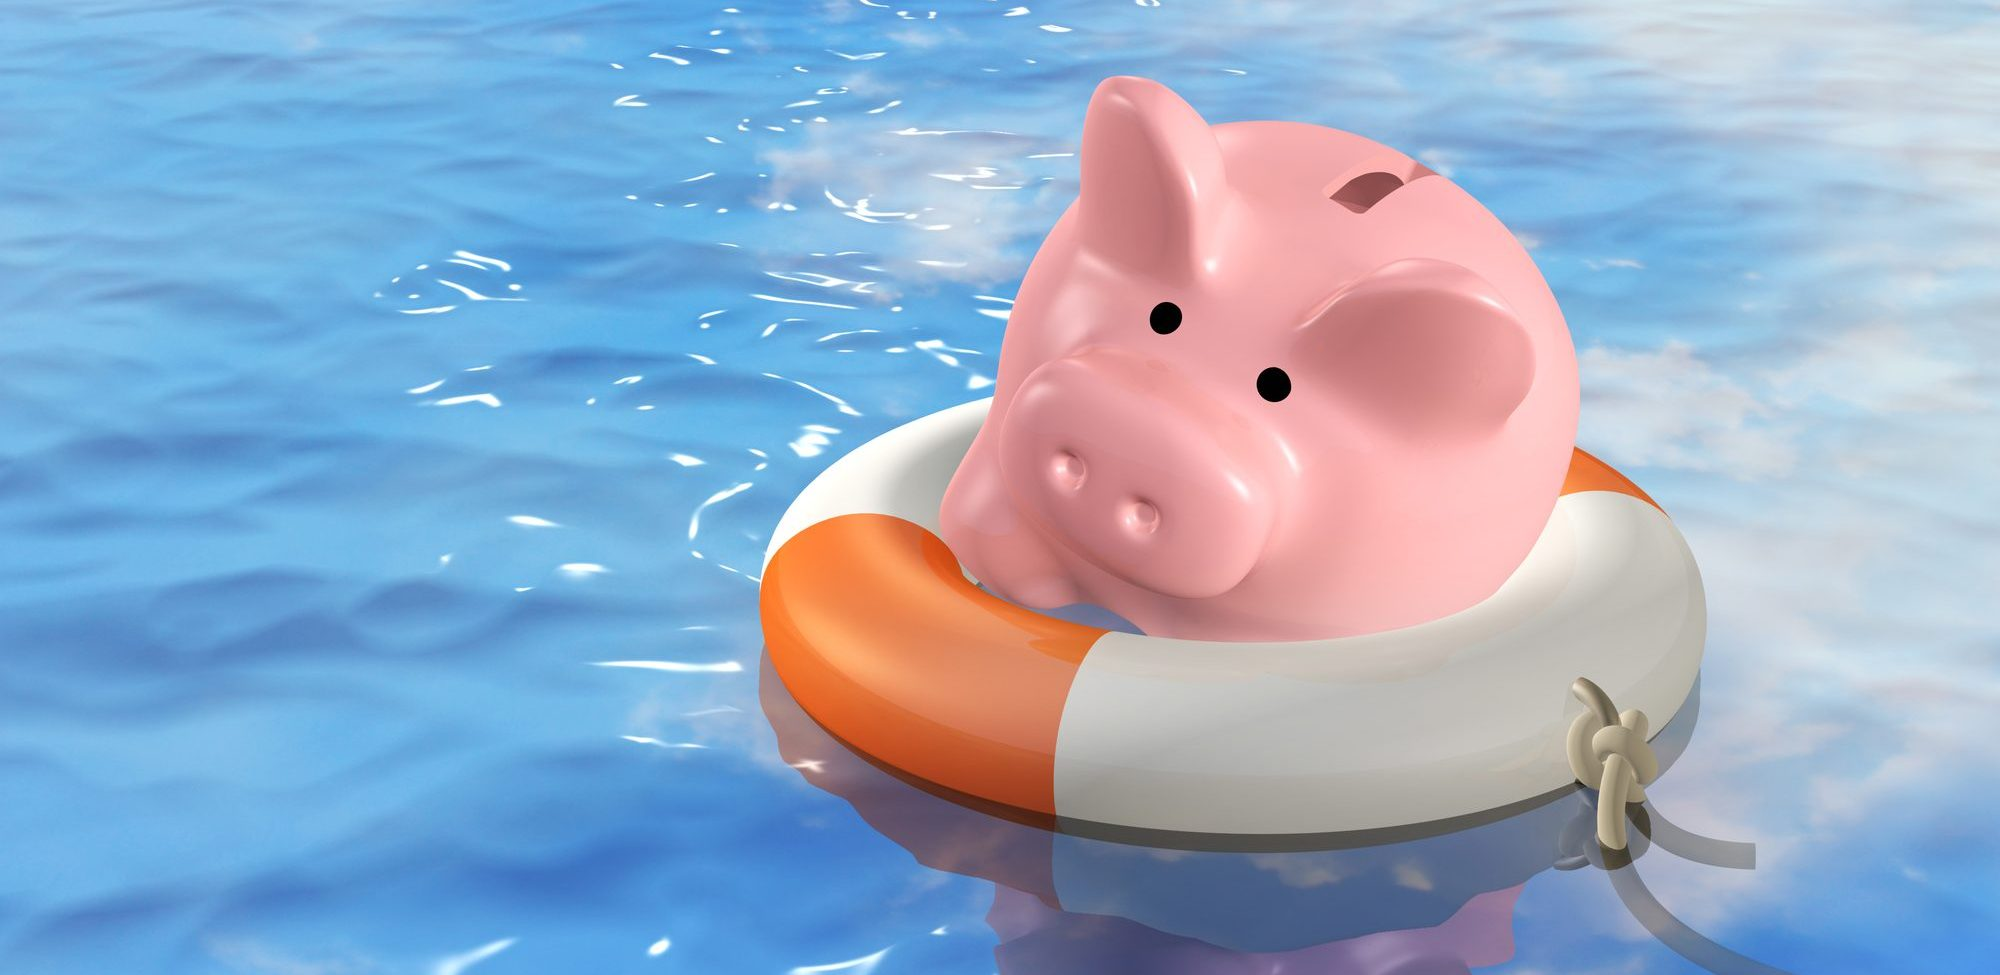 3 Costs To Consider When Buying A Hot Tub Lake Air Pool